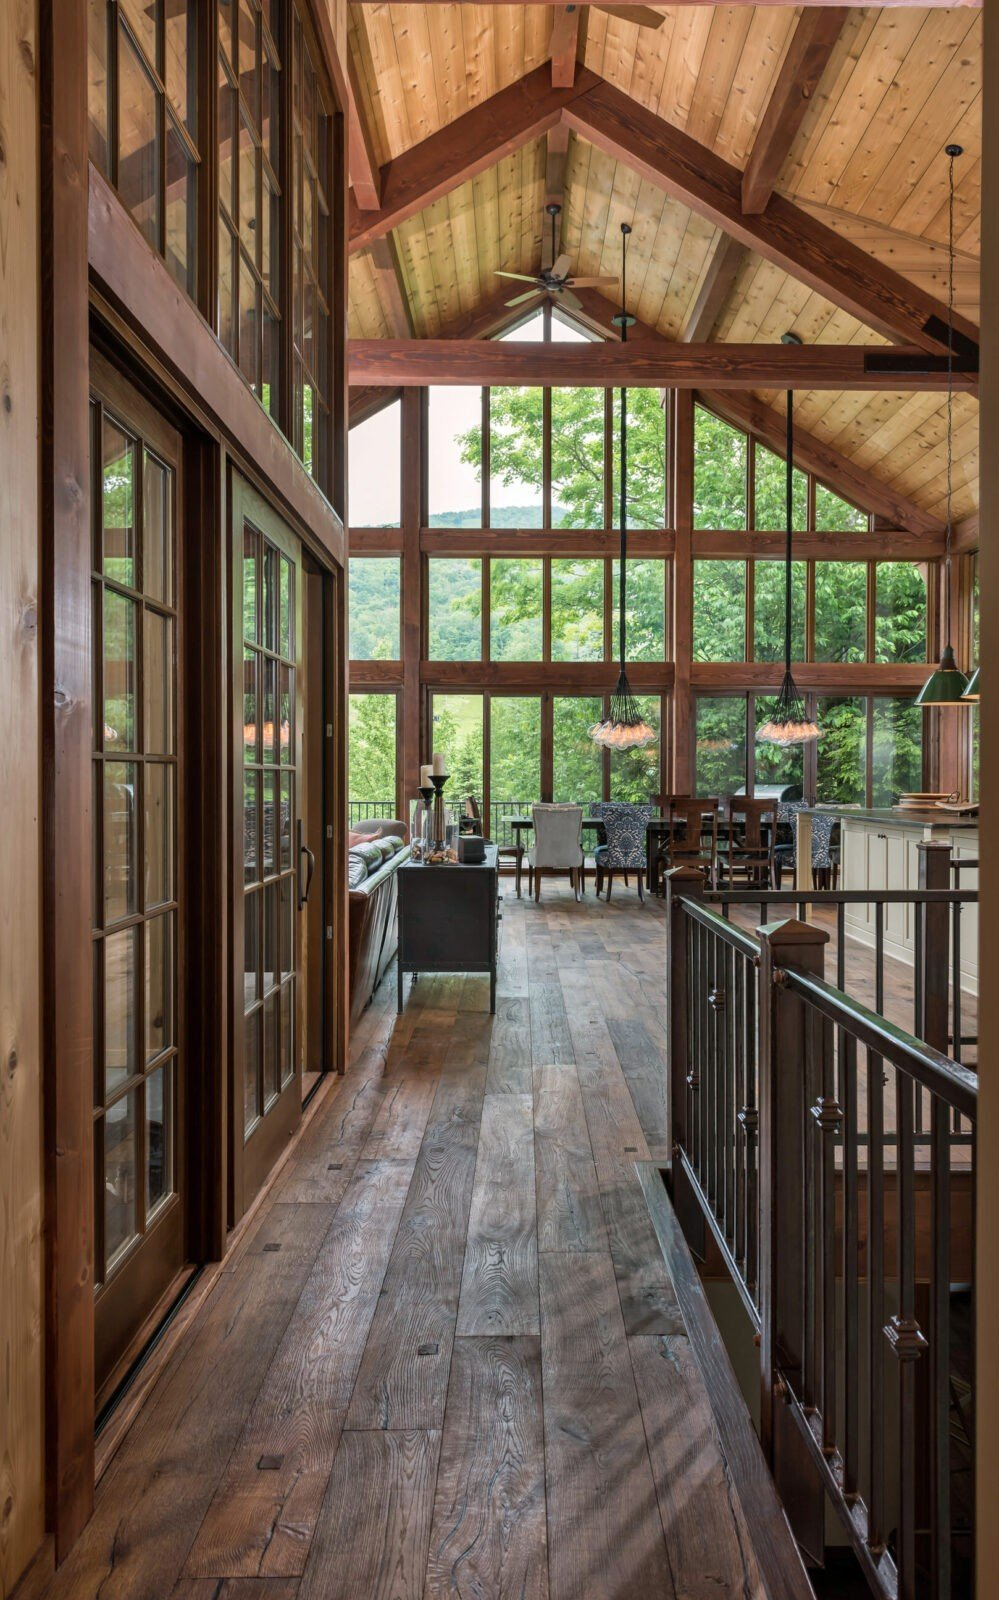 House design trends in 2019 house design trends for 2019 - 2019 home design trends ...